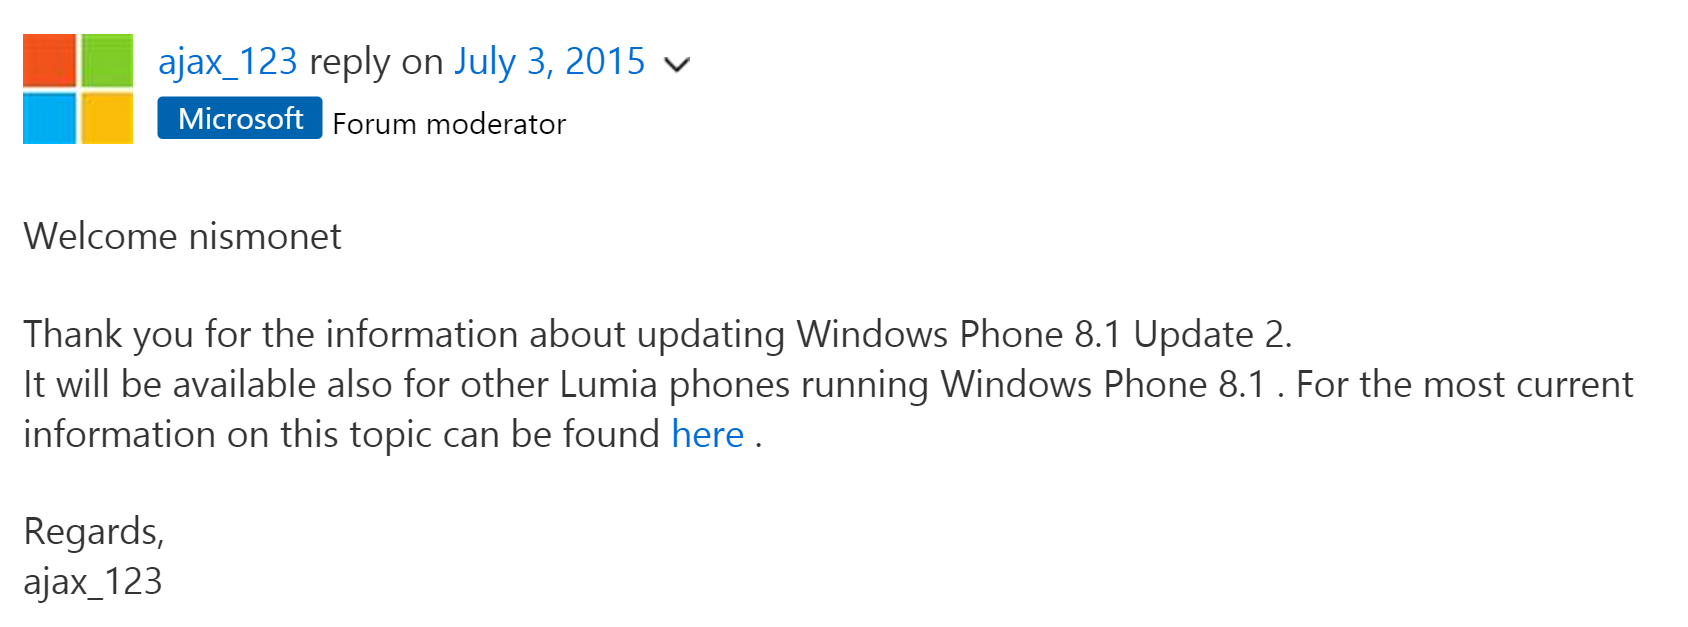 Microsoft support staff say Windows Phone 8.1 Update 2 coming to more Lumias 3